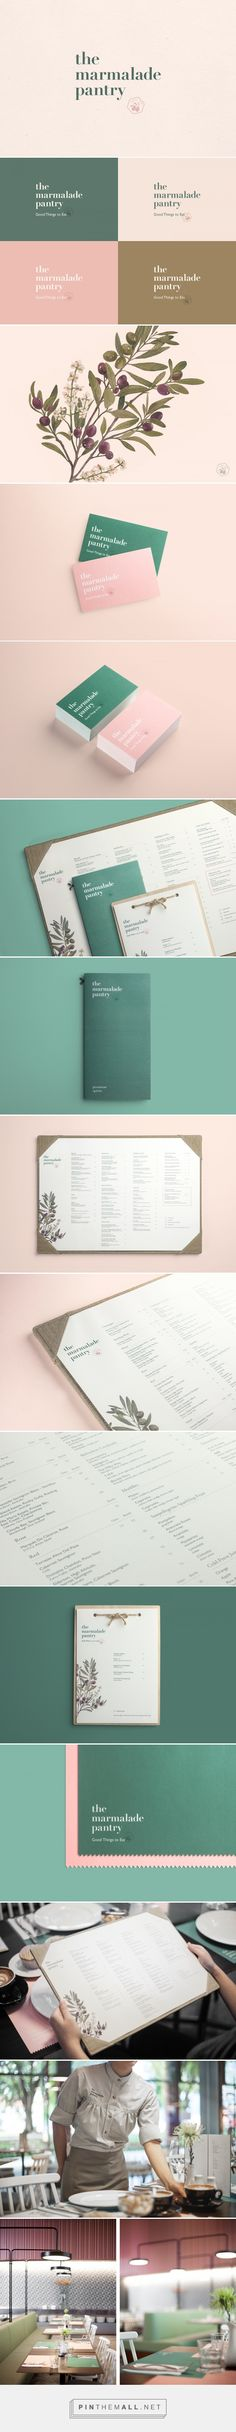 The Marmalade Pantry on Behance... - a grouped images picture - Pin Them All